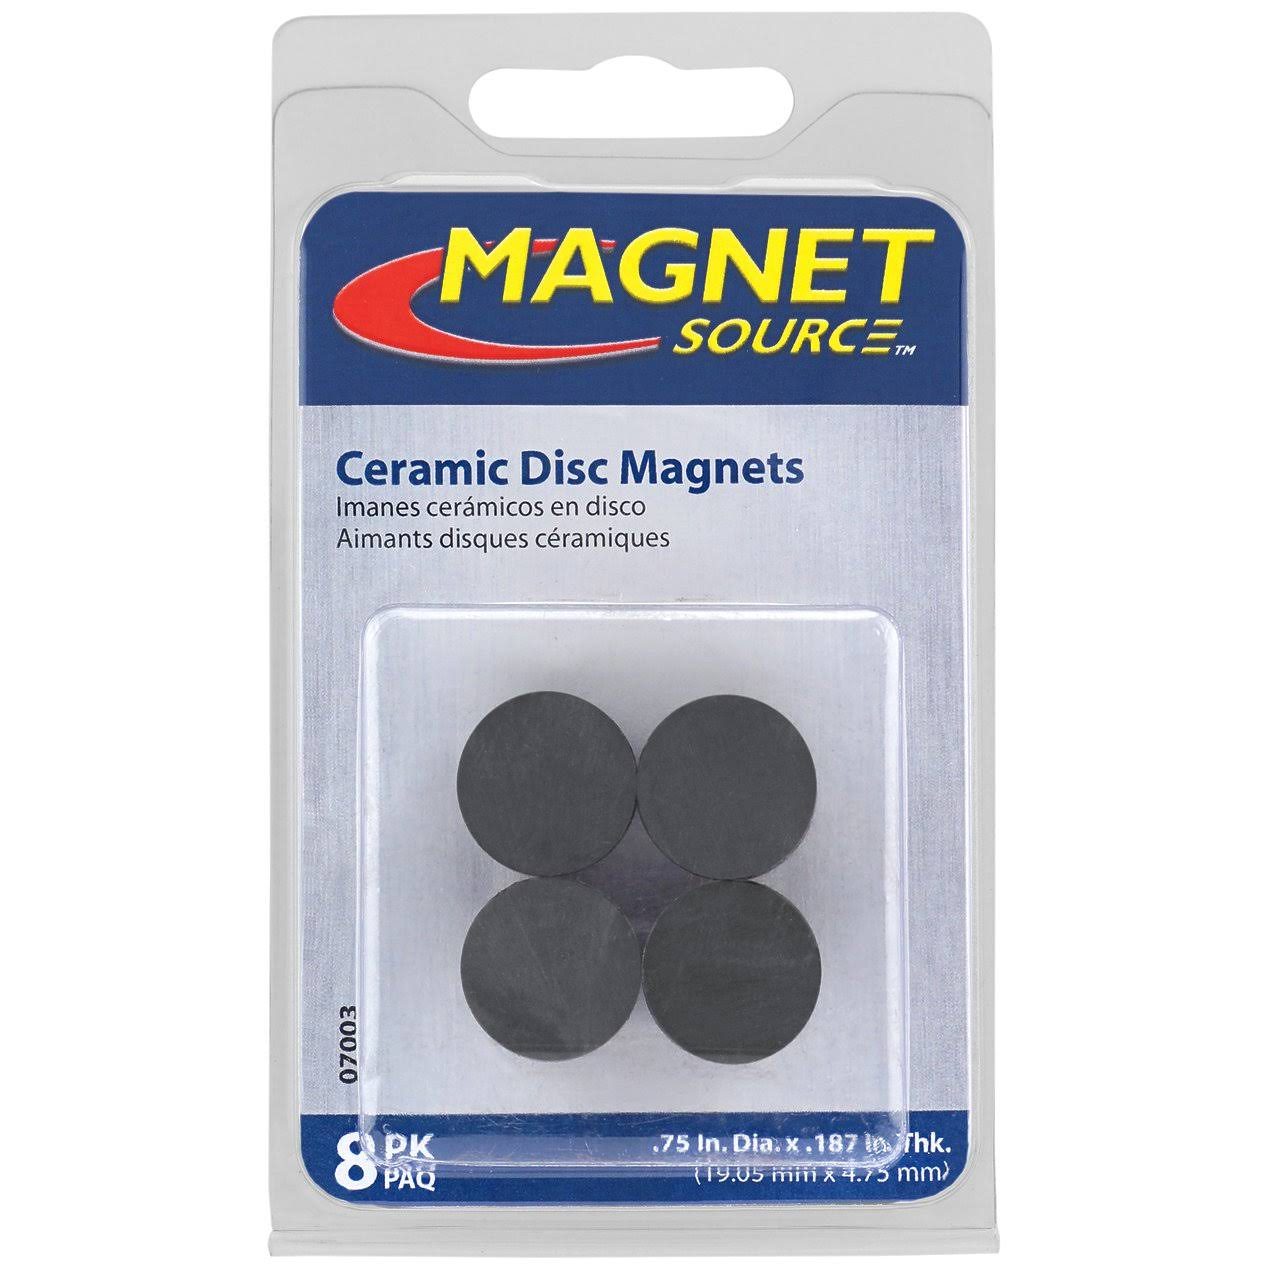 Master Magnetics Ceramic Disc Magnets - 8 Ceramic Disc Magnets